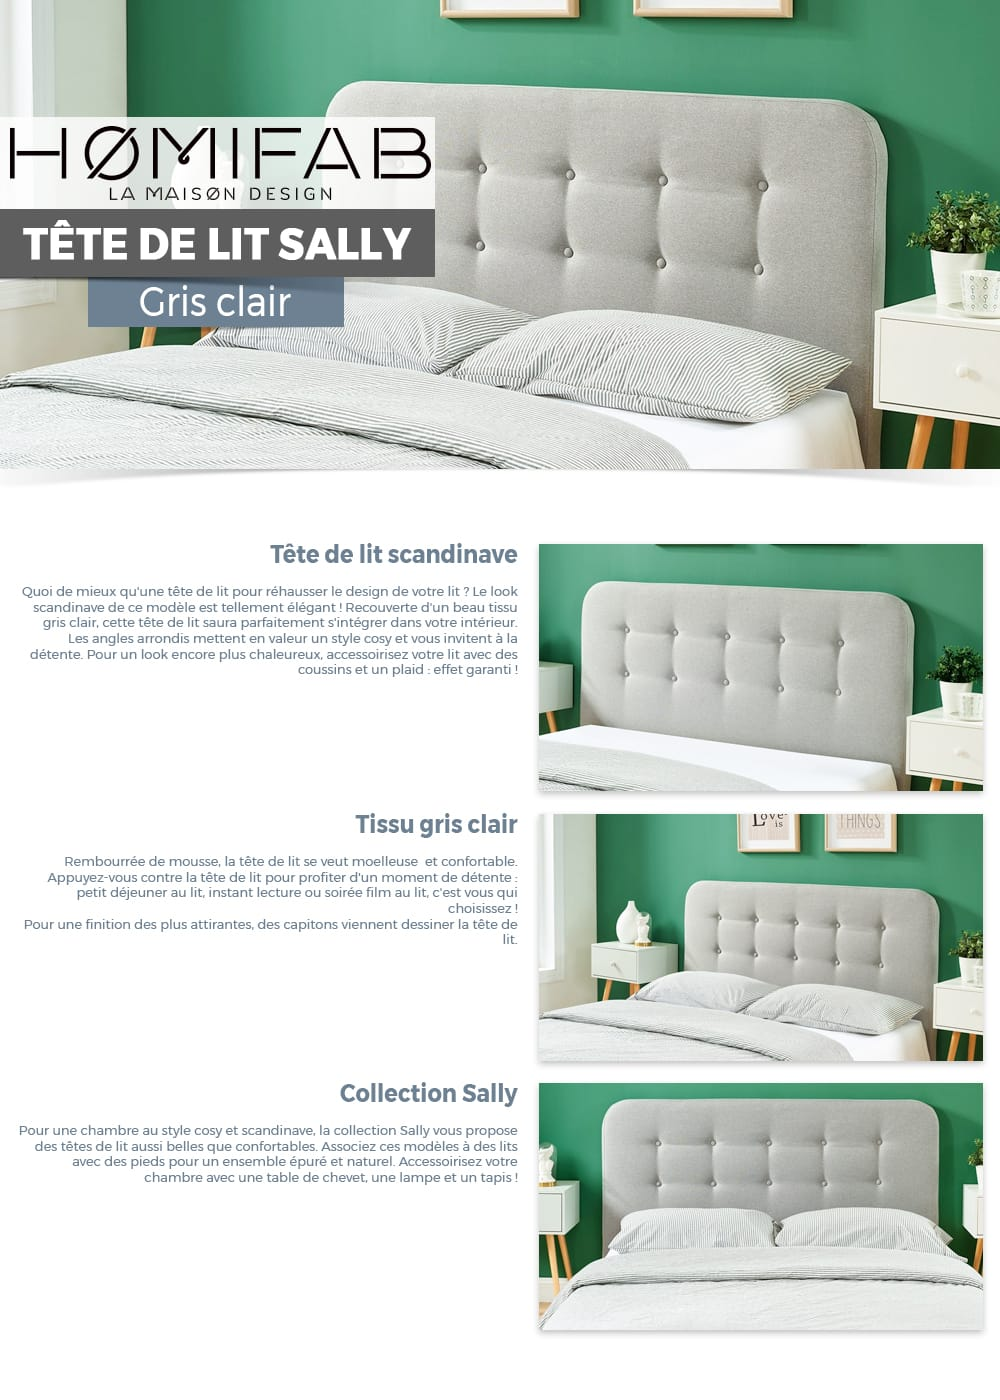 Tete Lit Tête De Lit Gris Clair 160cm Collection Sally